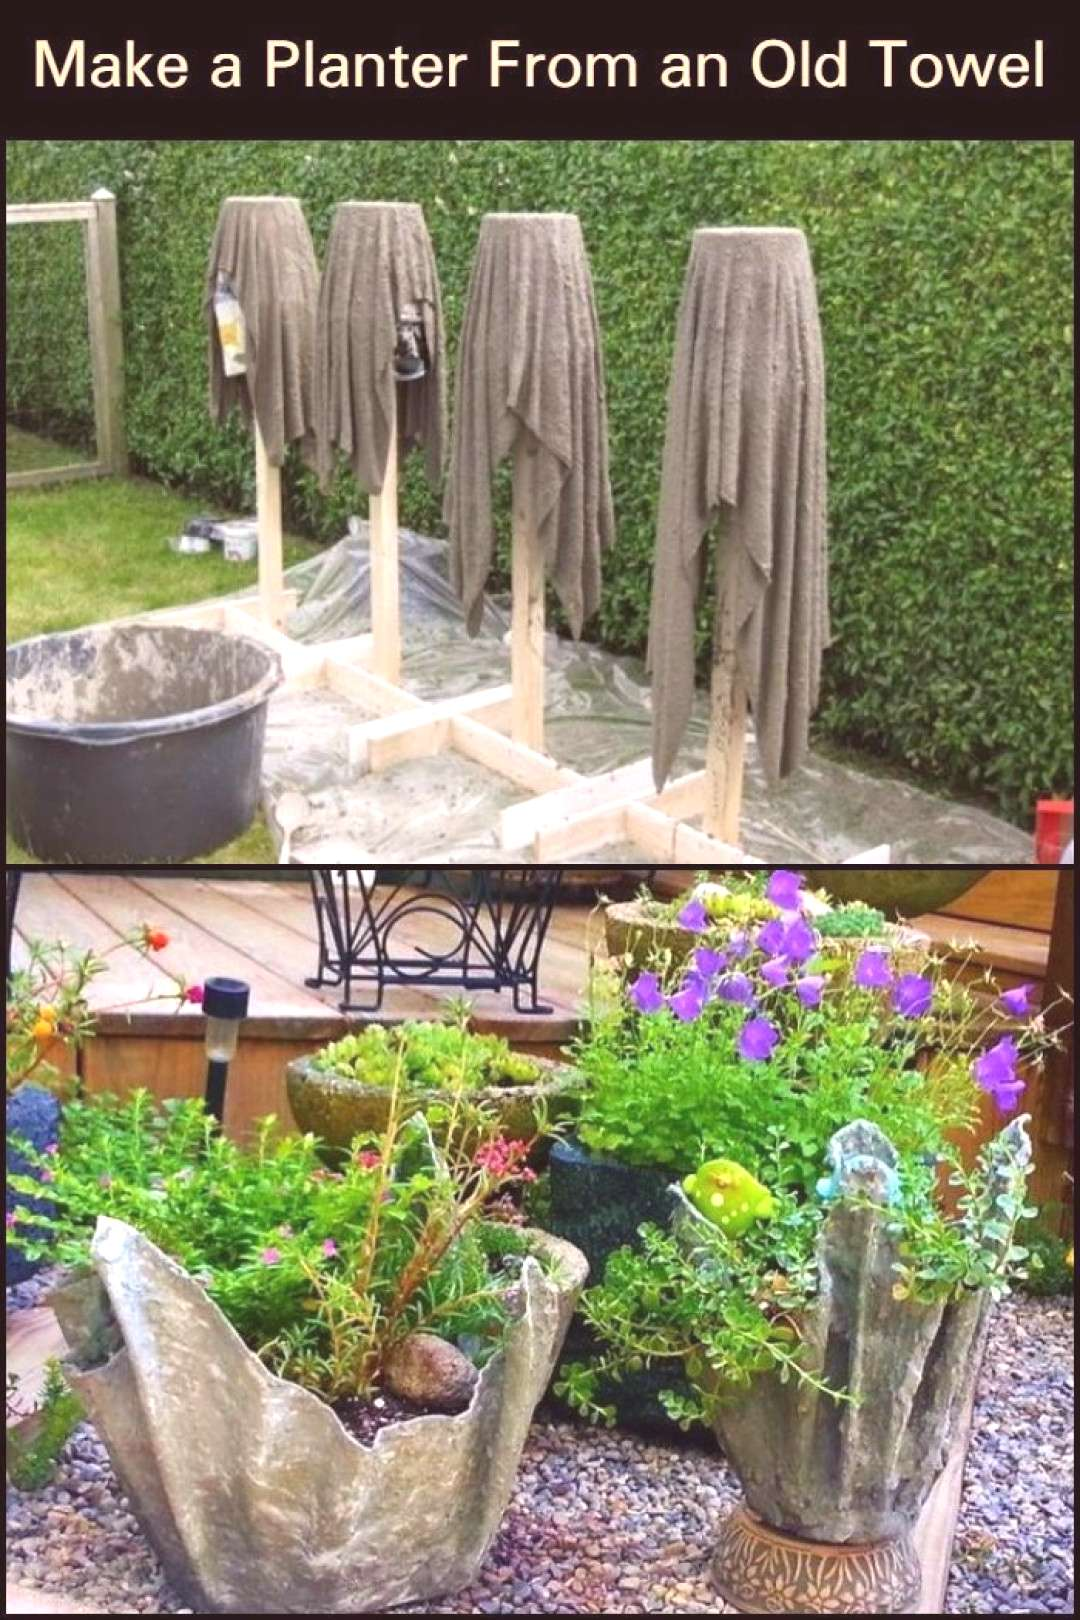 Decorate Your Home and Grow More Flowers by Turning an Old Towel into a Stunning Concrete Planter